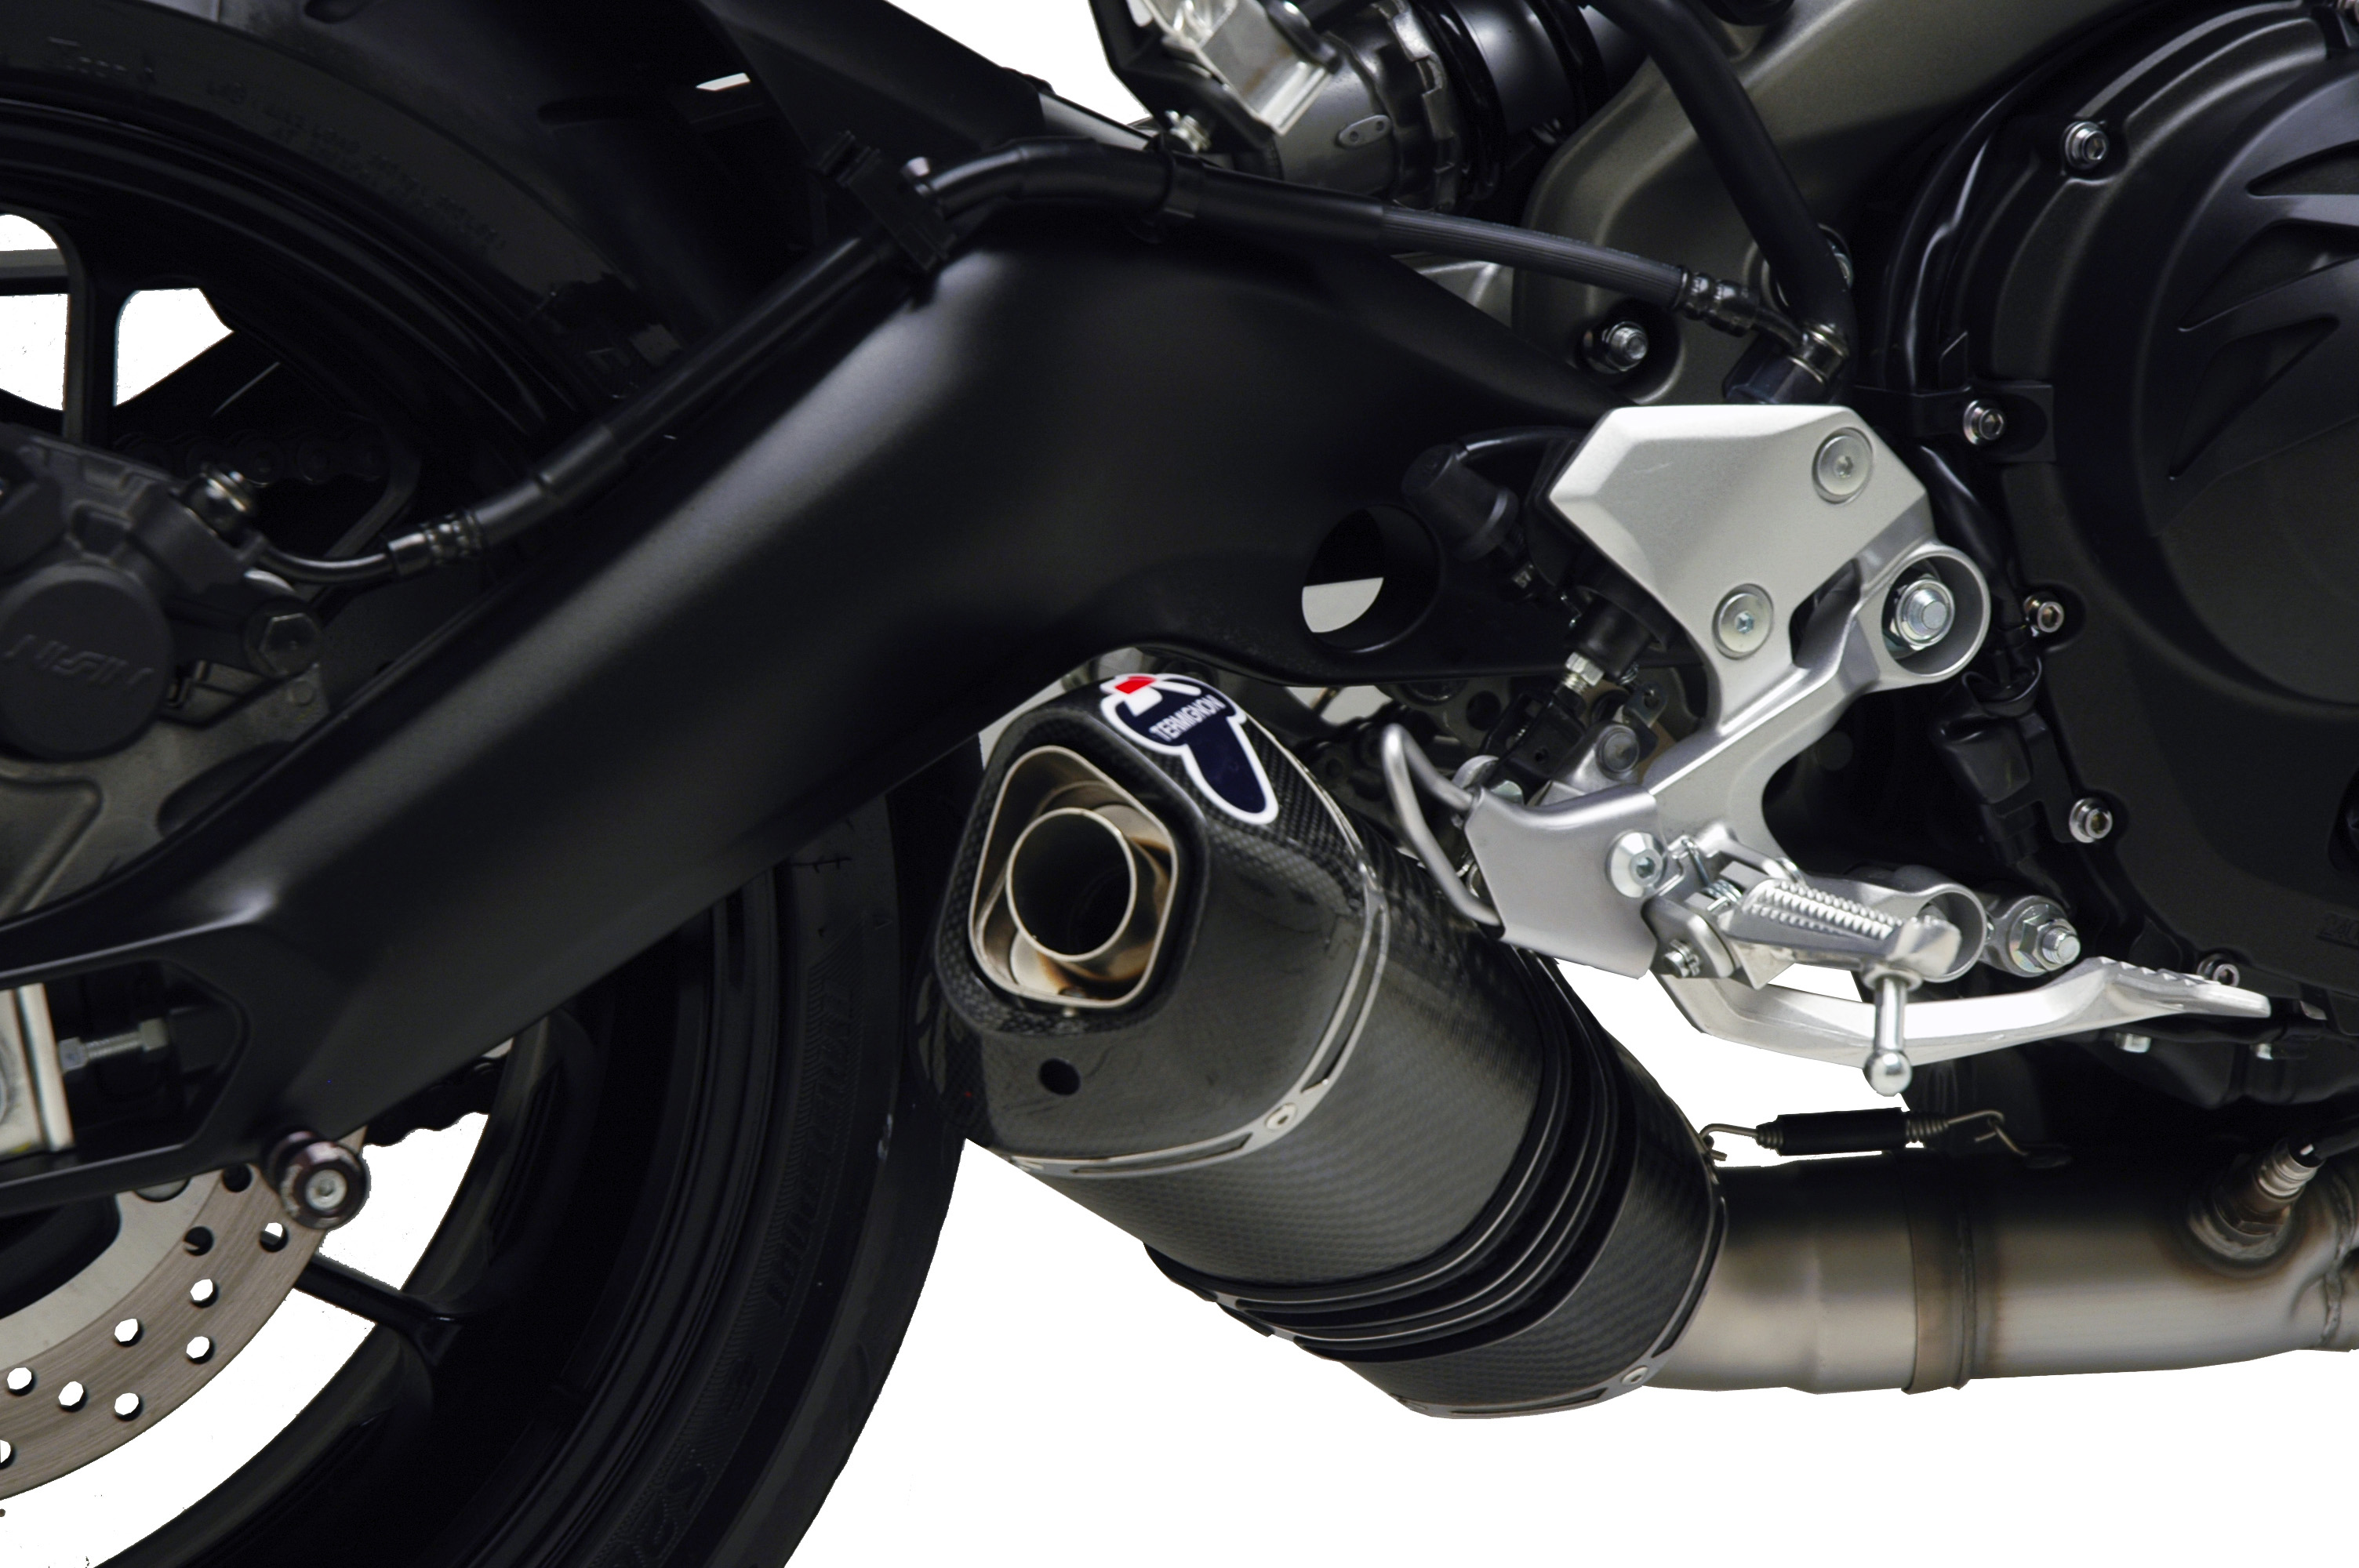 How To Remove Baffle From Yamaha Xsr